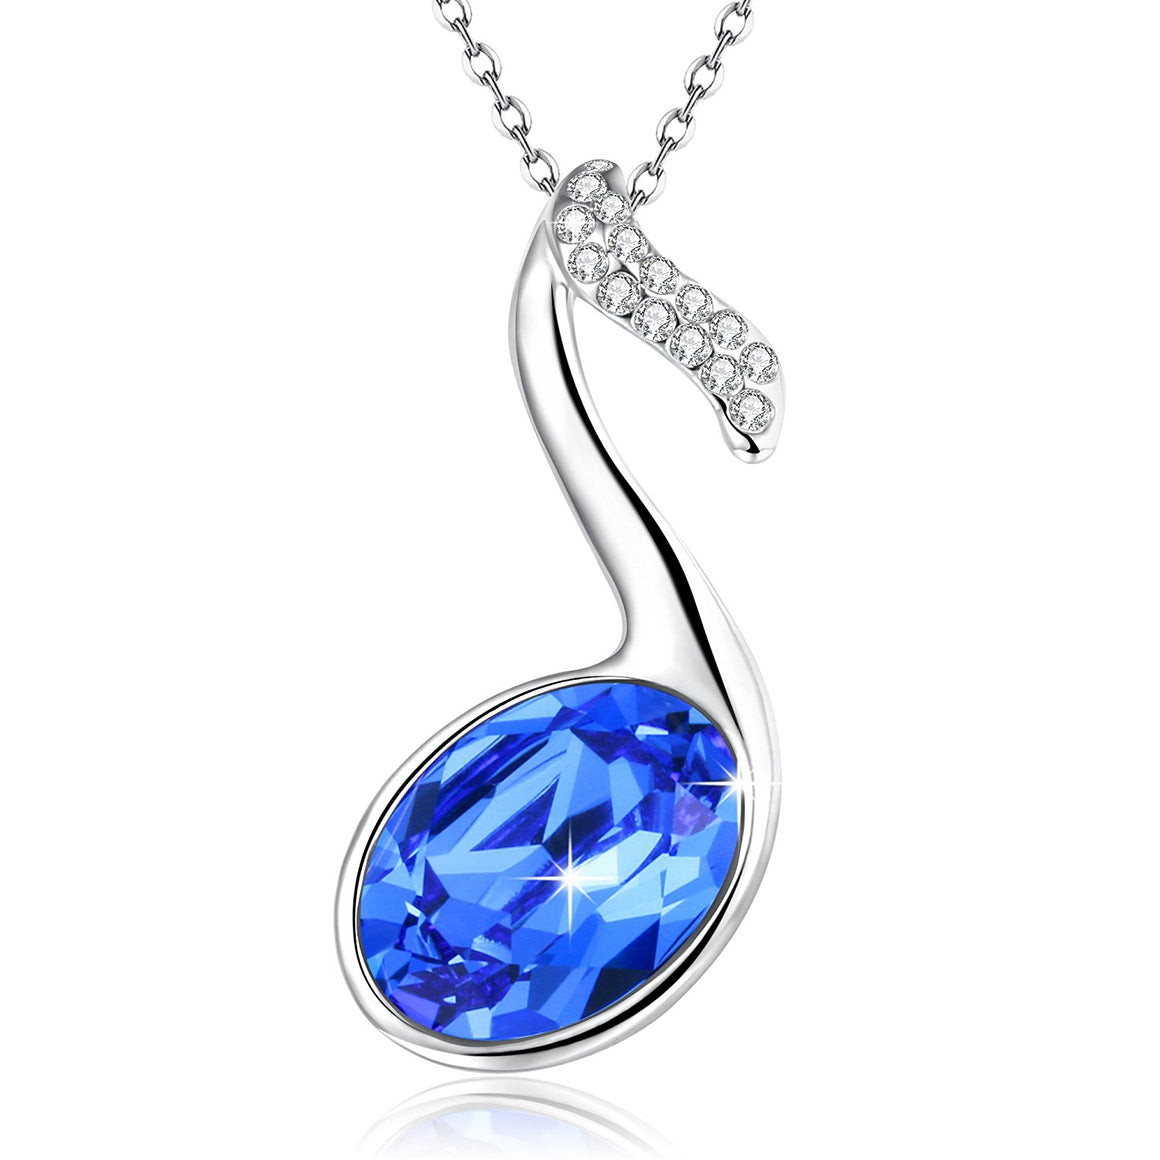 """ Summer Waltz"" Music Note Pendant Necklace,Blue Crystal from Swarovski,Gift for women birthday"